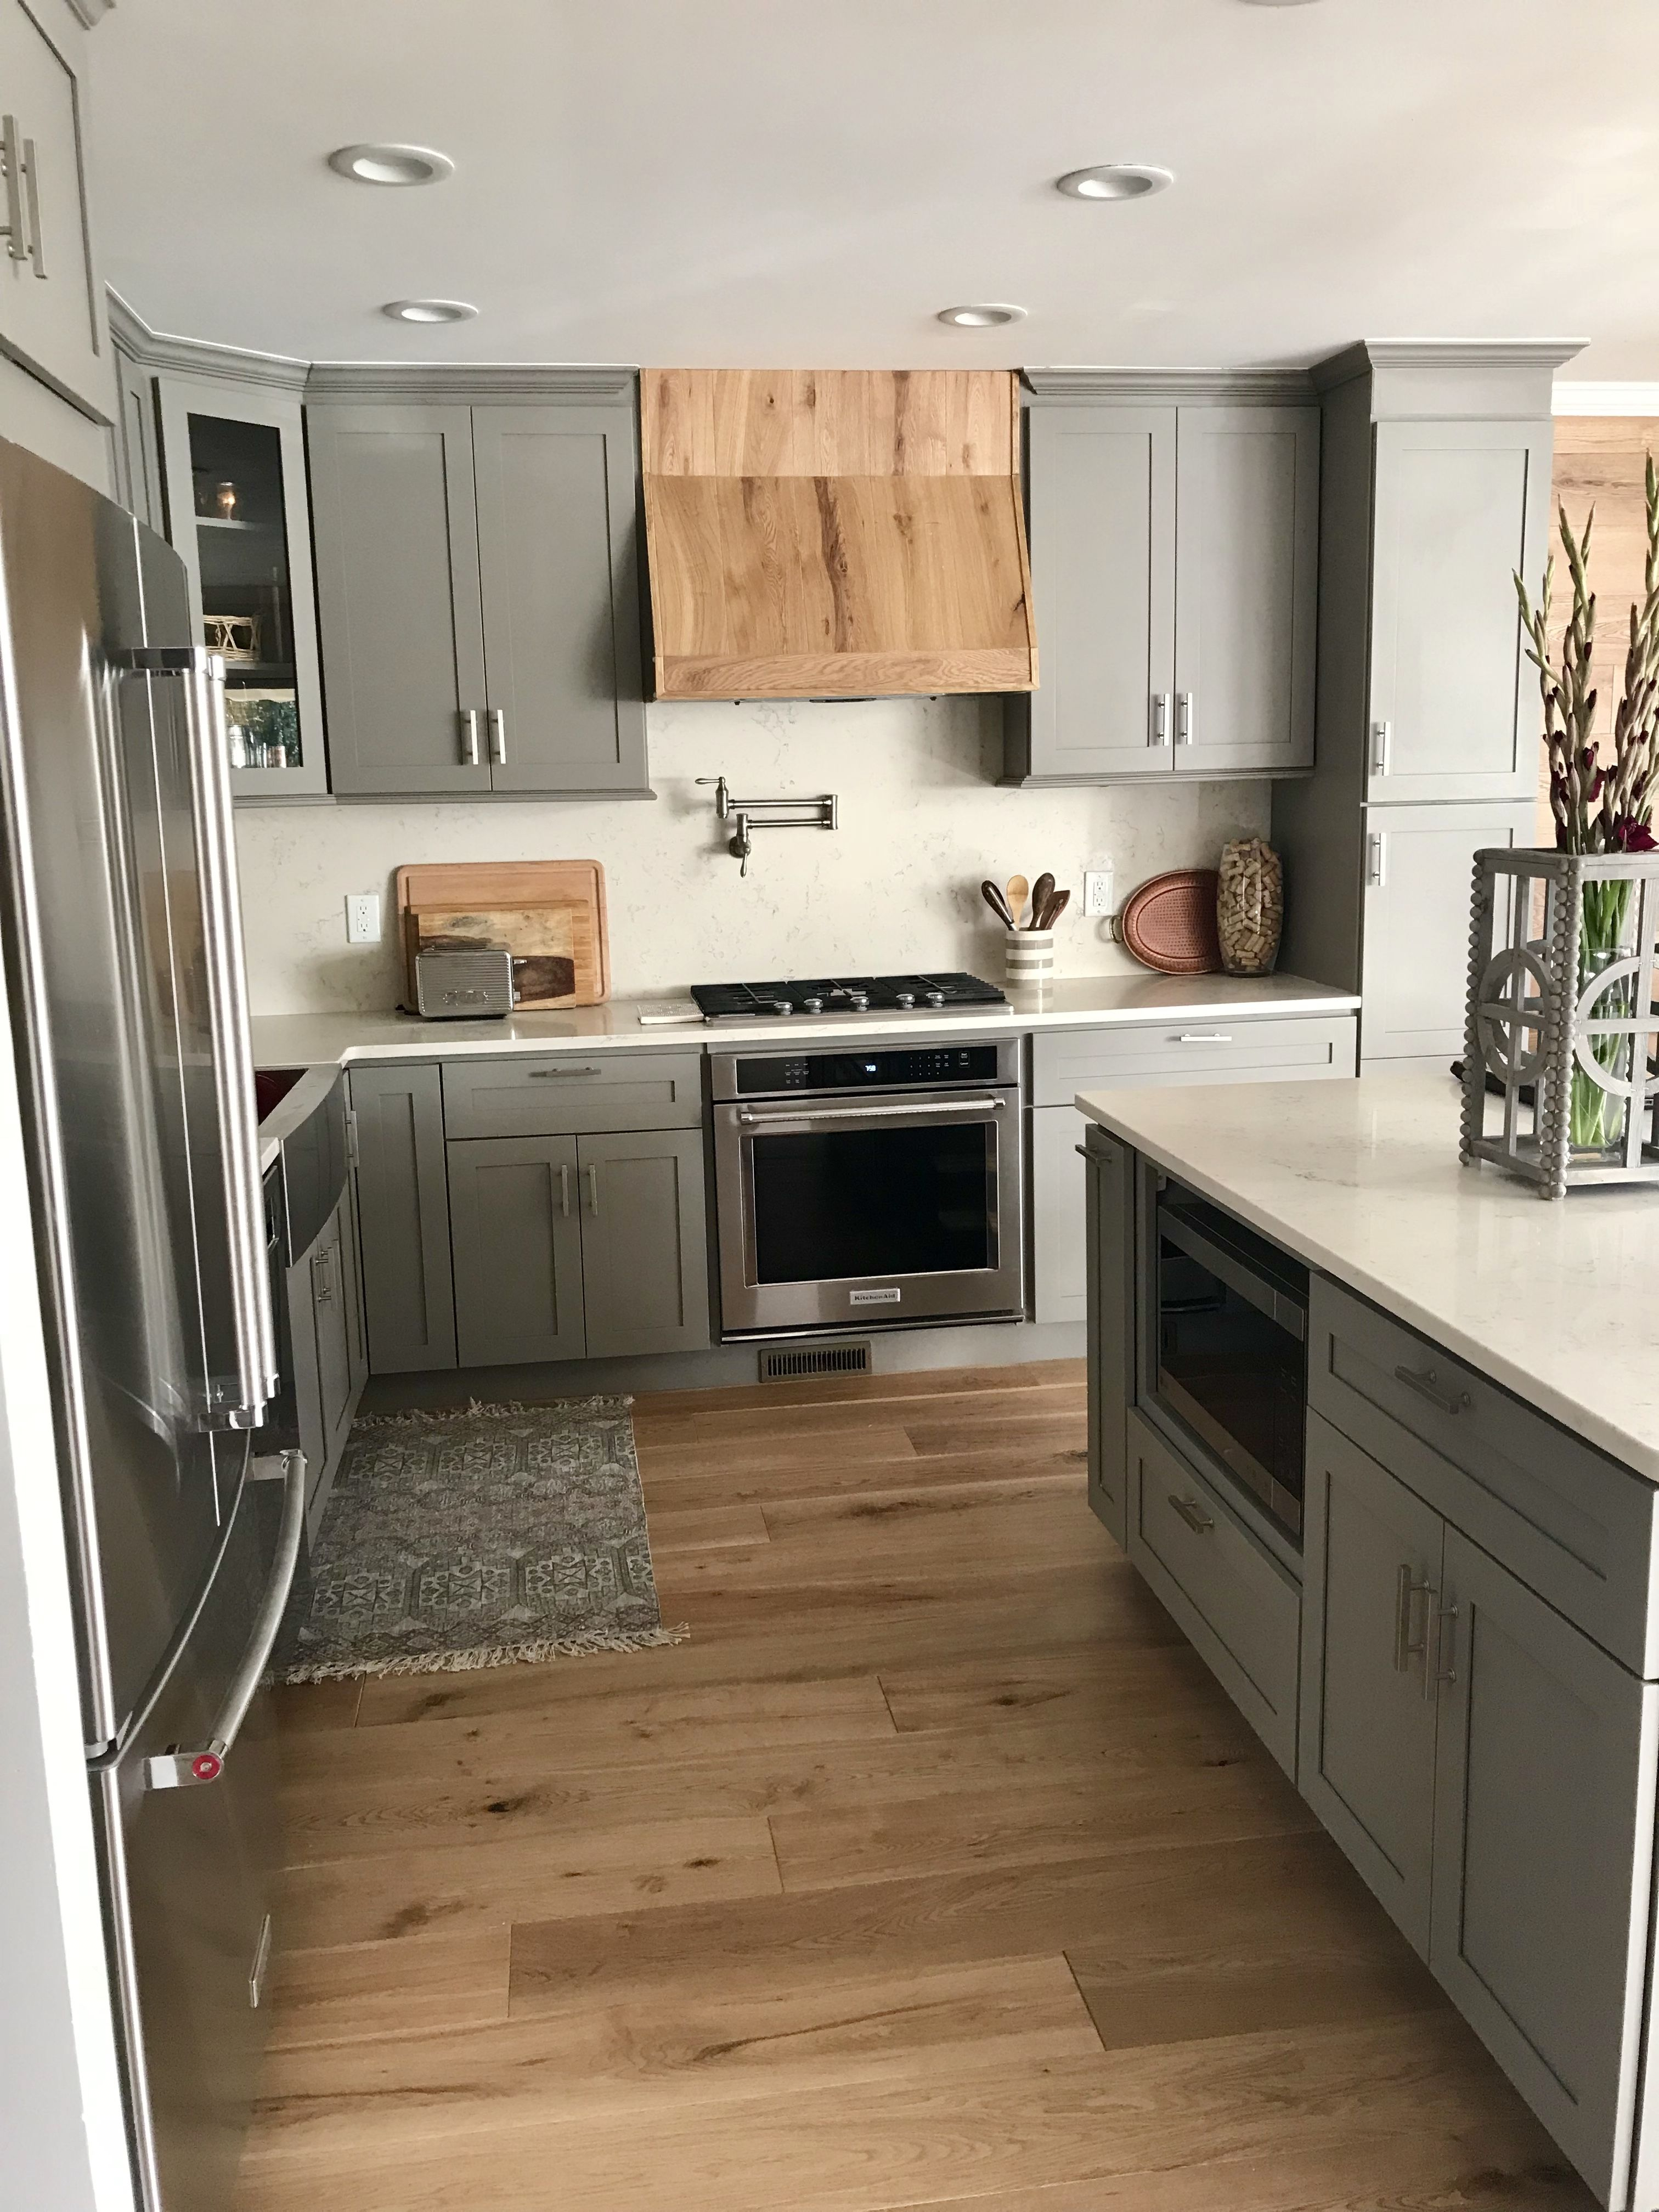 Grey Shaker Kitchen Cabinets With Quartz Countertops And